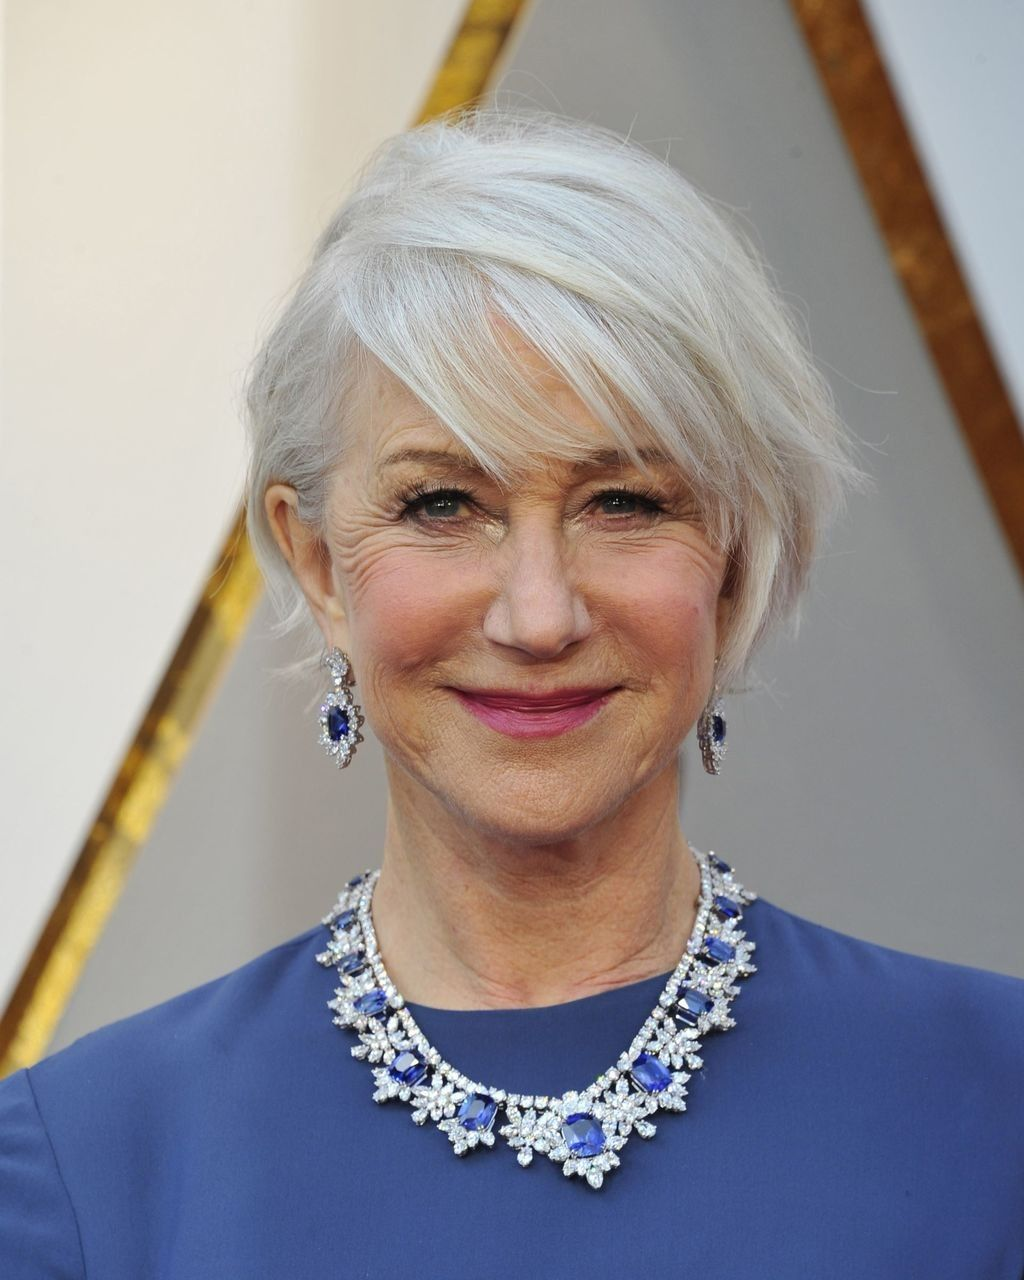 helen mirren at the oscars 2018 | short hair